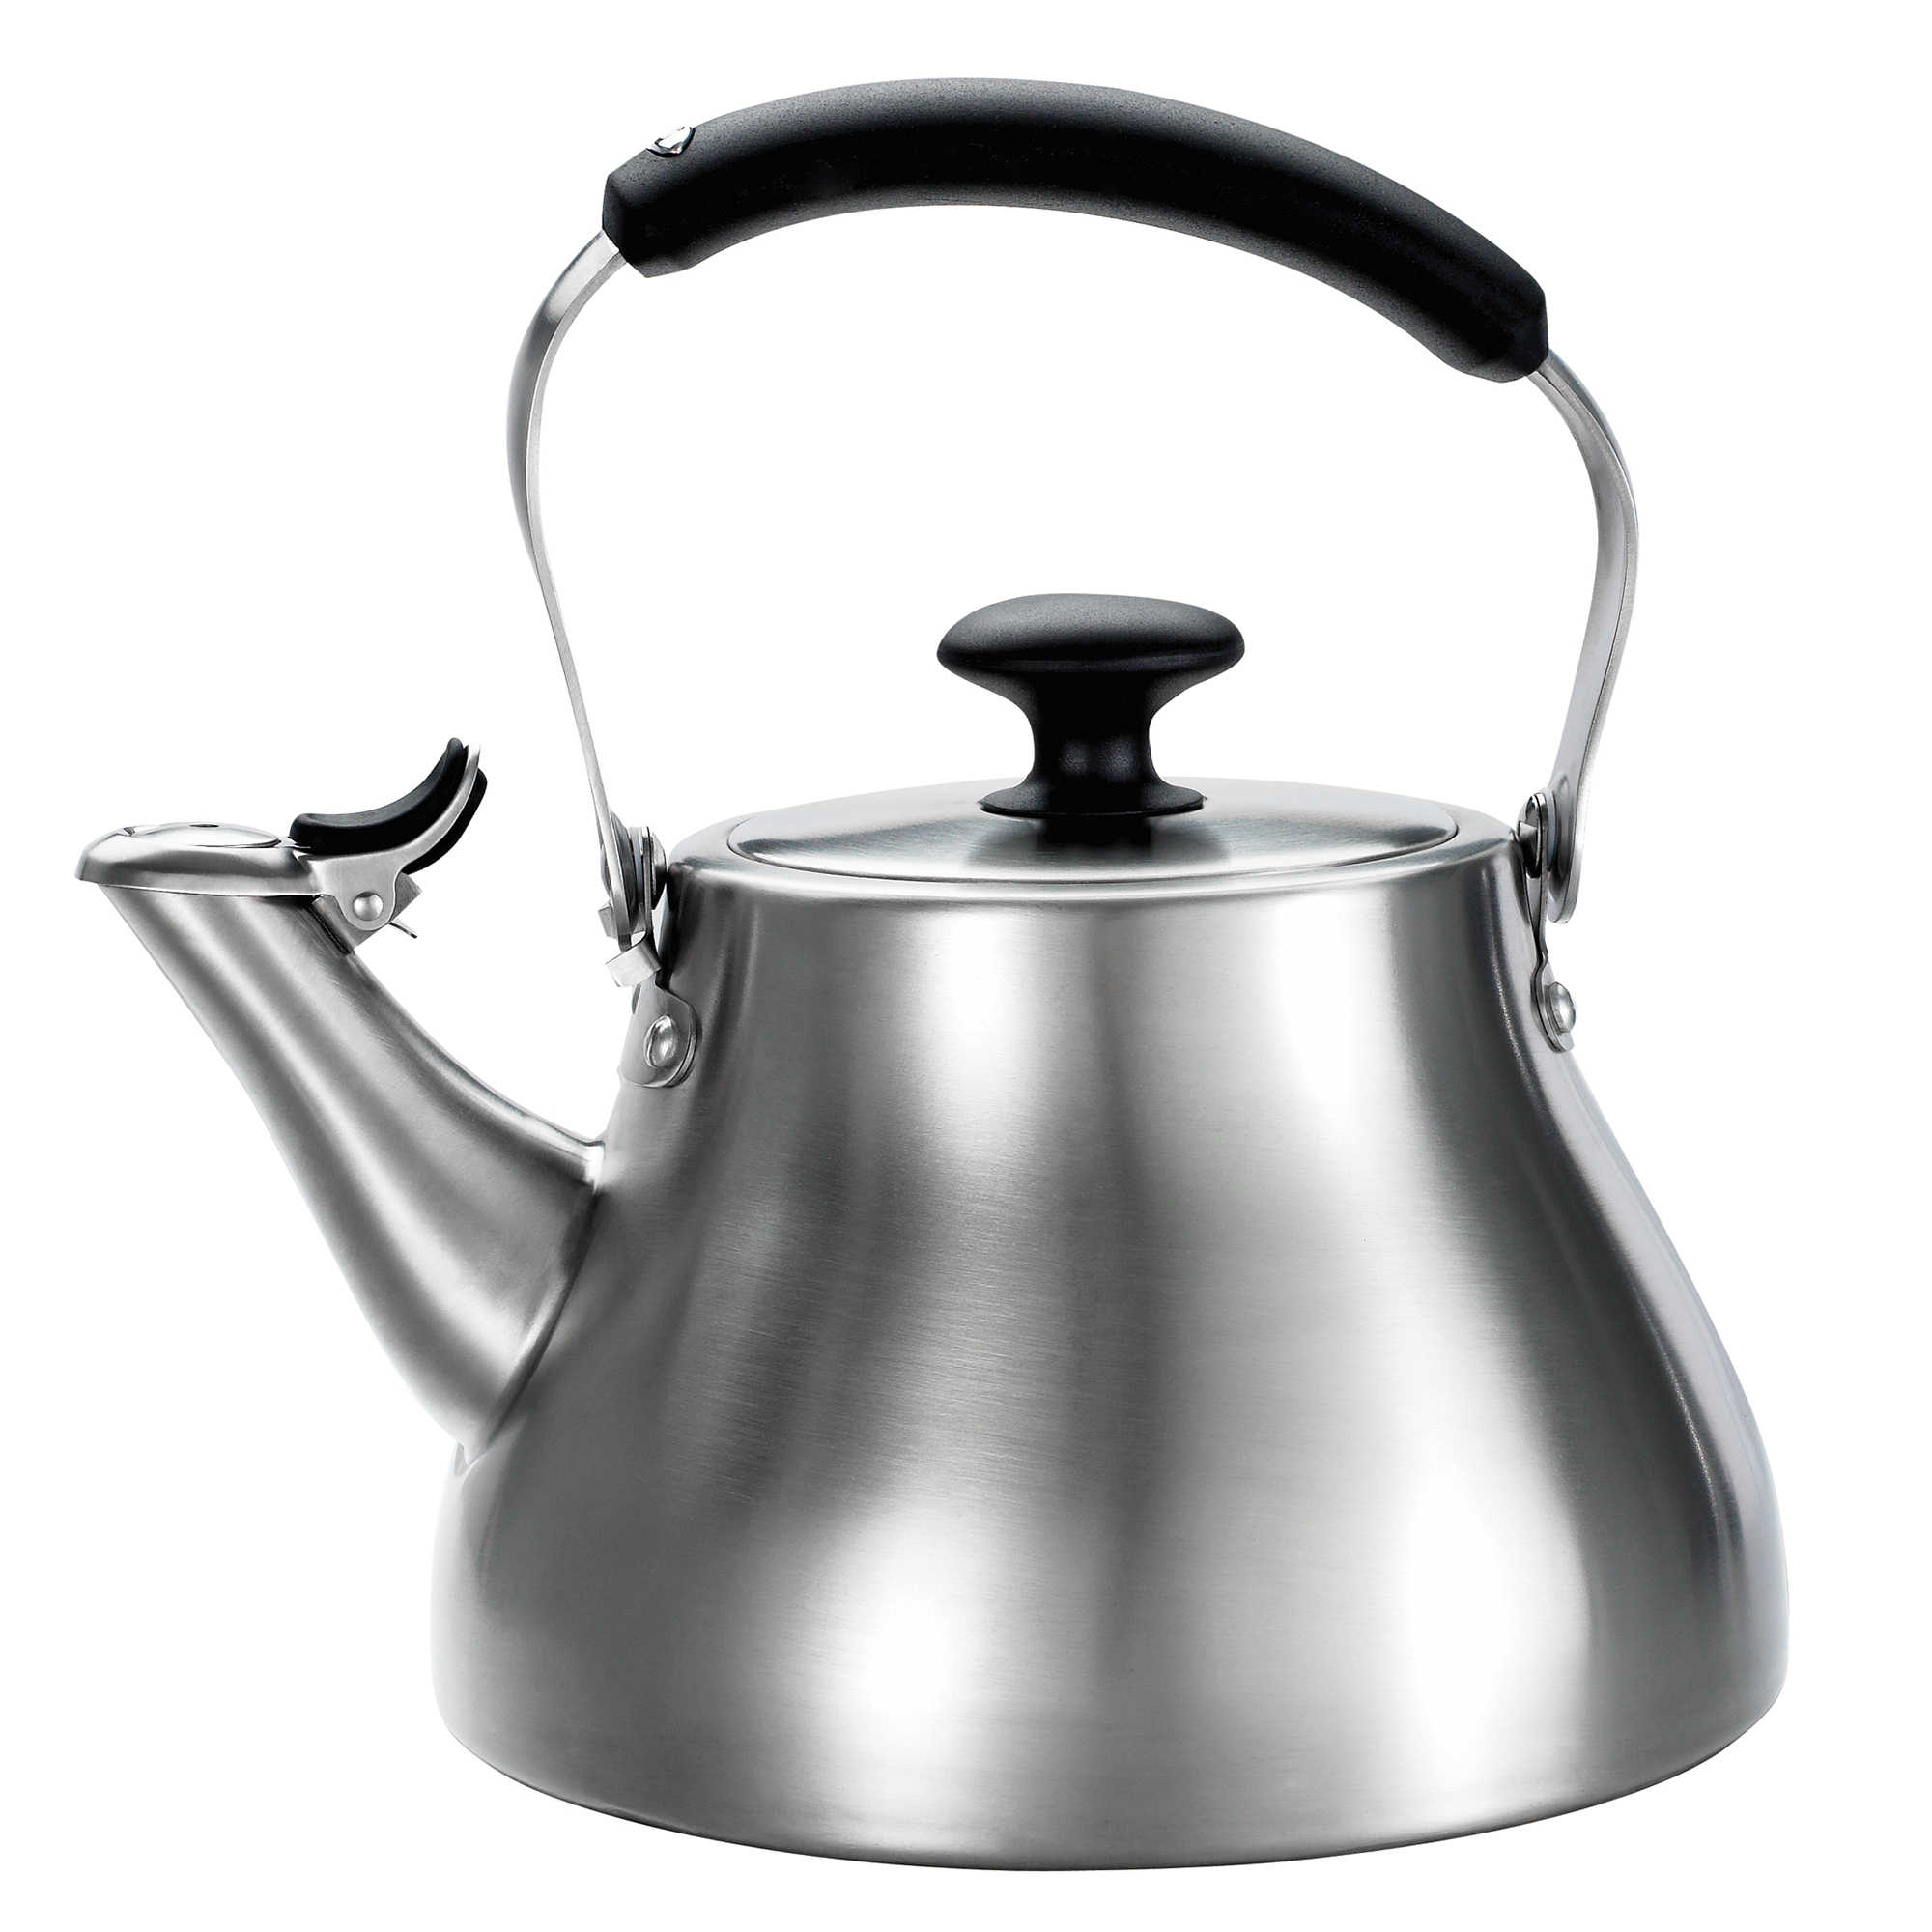 oxo good grips® brushed stainless steel tea kettle  bed bath  beyond - oxo good gripsreg brushed stainless steel tea kettle